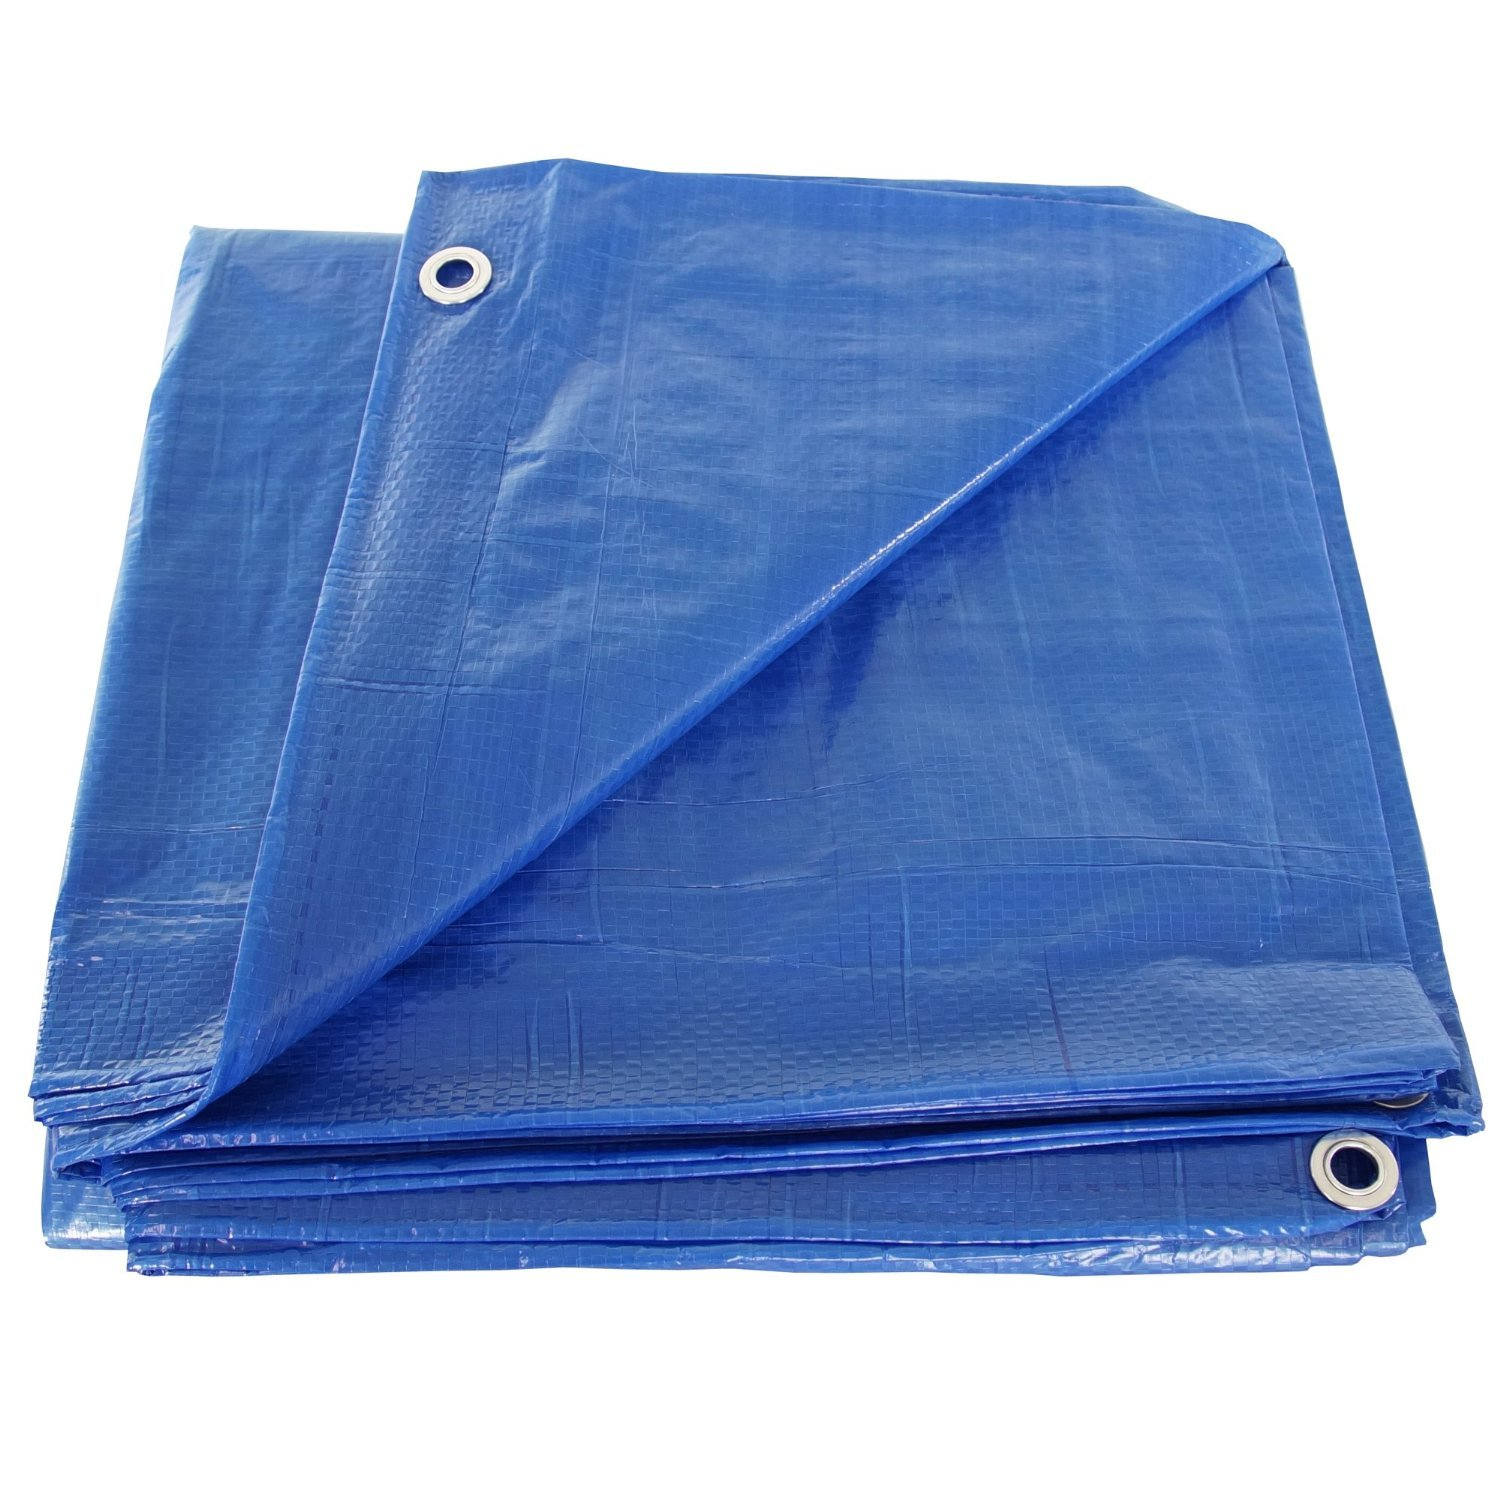 30' x 50' Blue Poly Tarp Cover, Water Proof Tent Shelter Camping RV Boat Tarpaulin